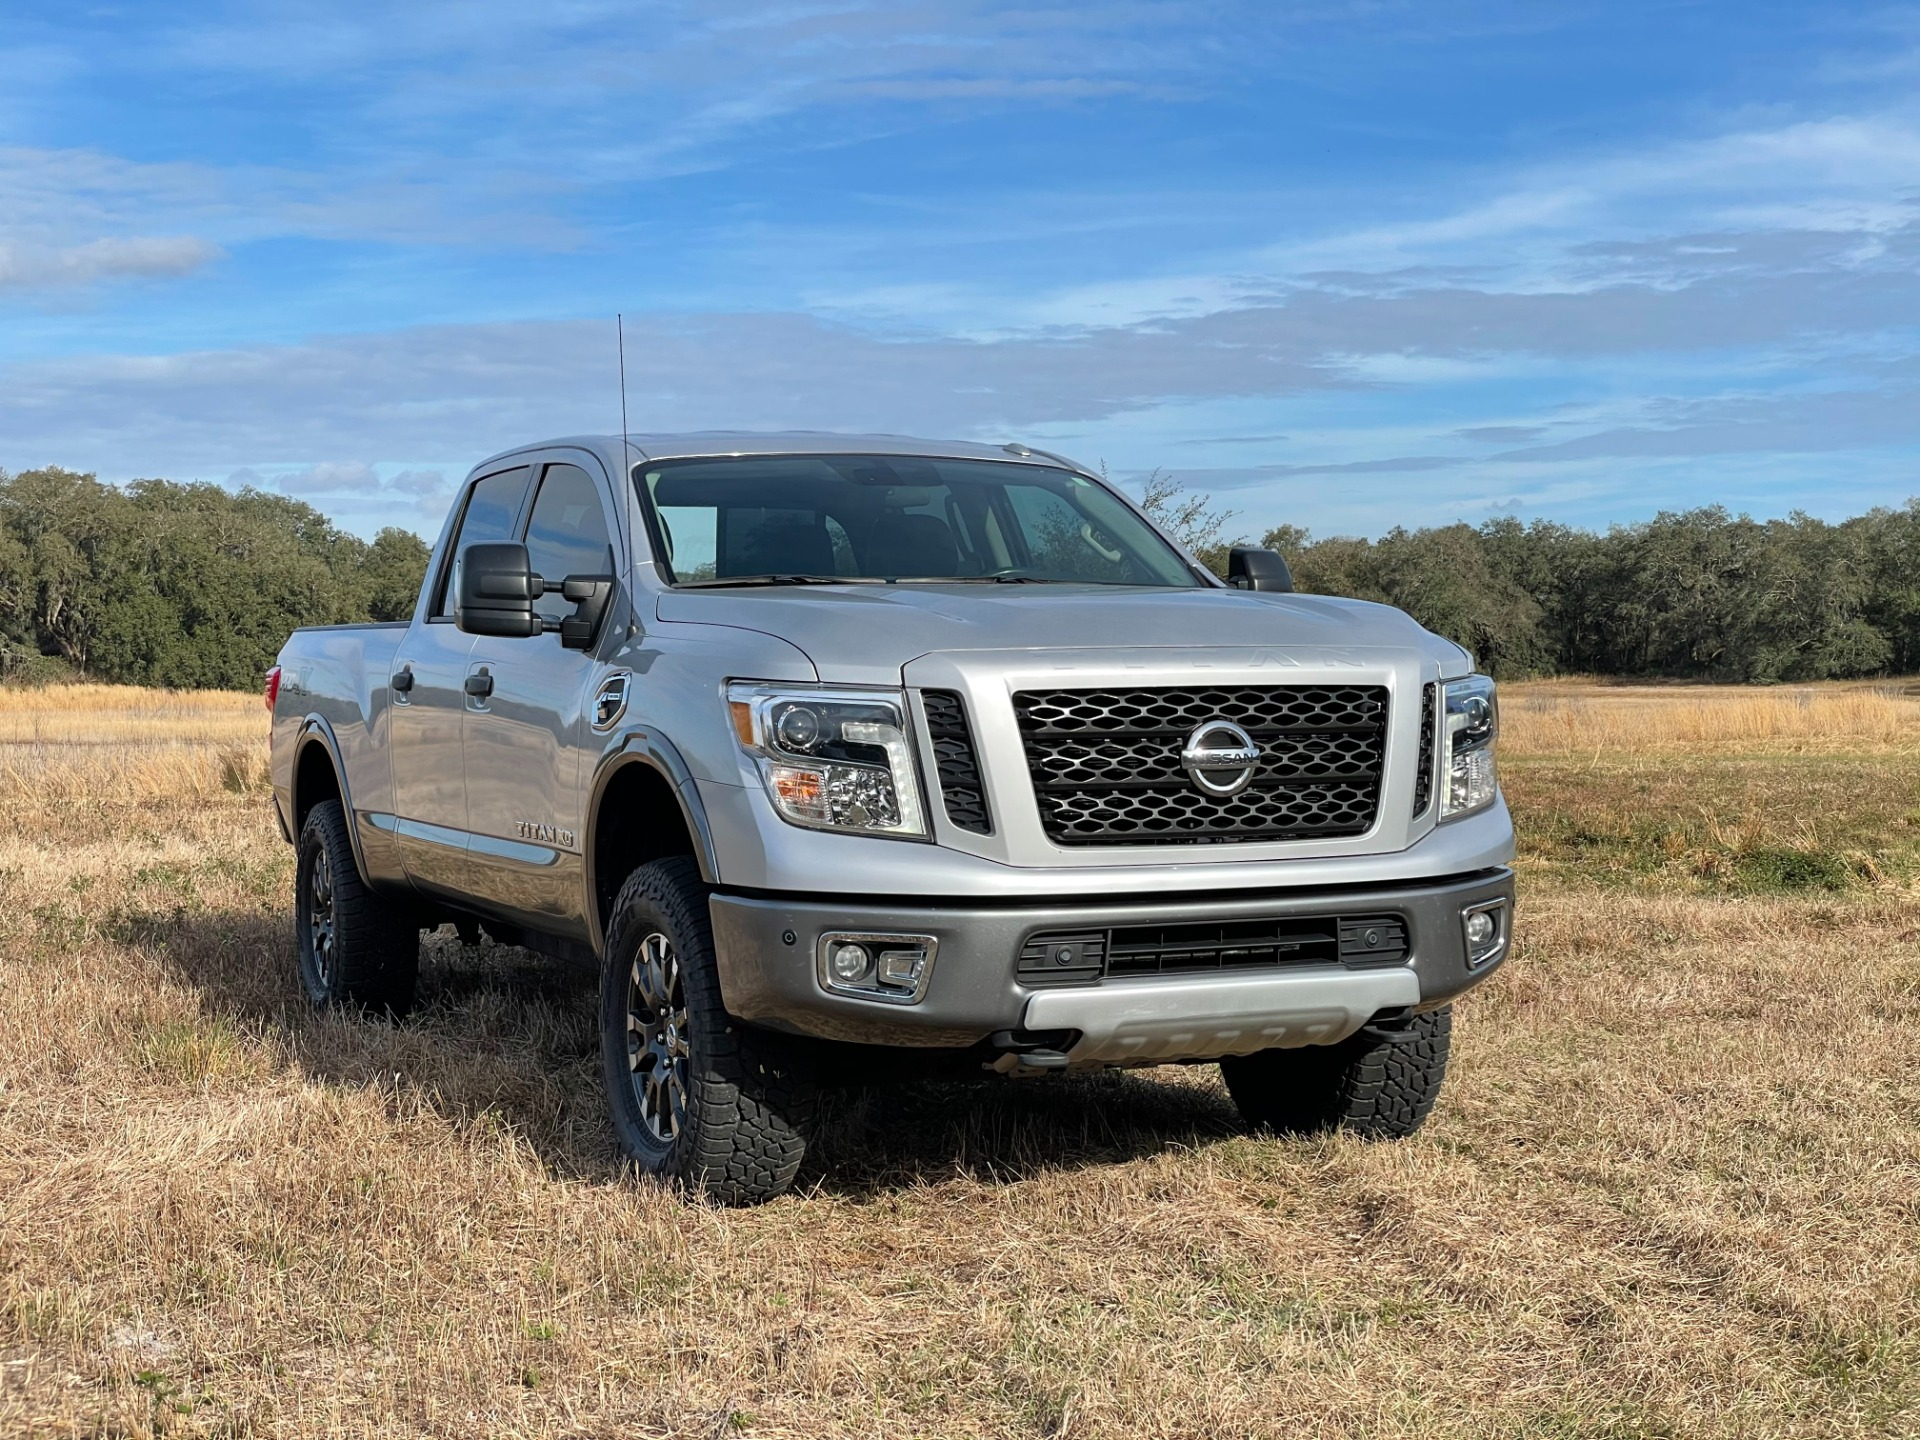 Used 2017 Nissan TITAN XD Crew Cab PRO-4X Pickup 4D 6 1/2 ft for sale $37,497 at Track and Field Motors in Safety Harbor FL